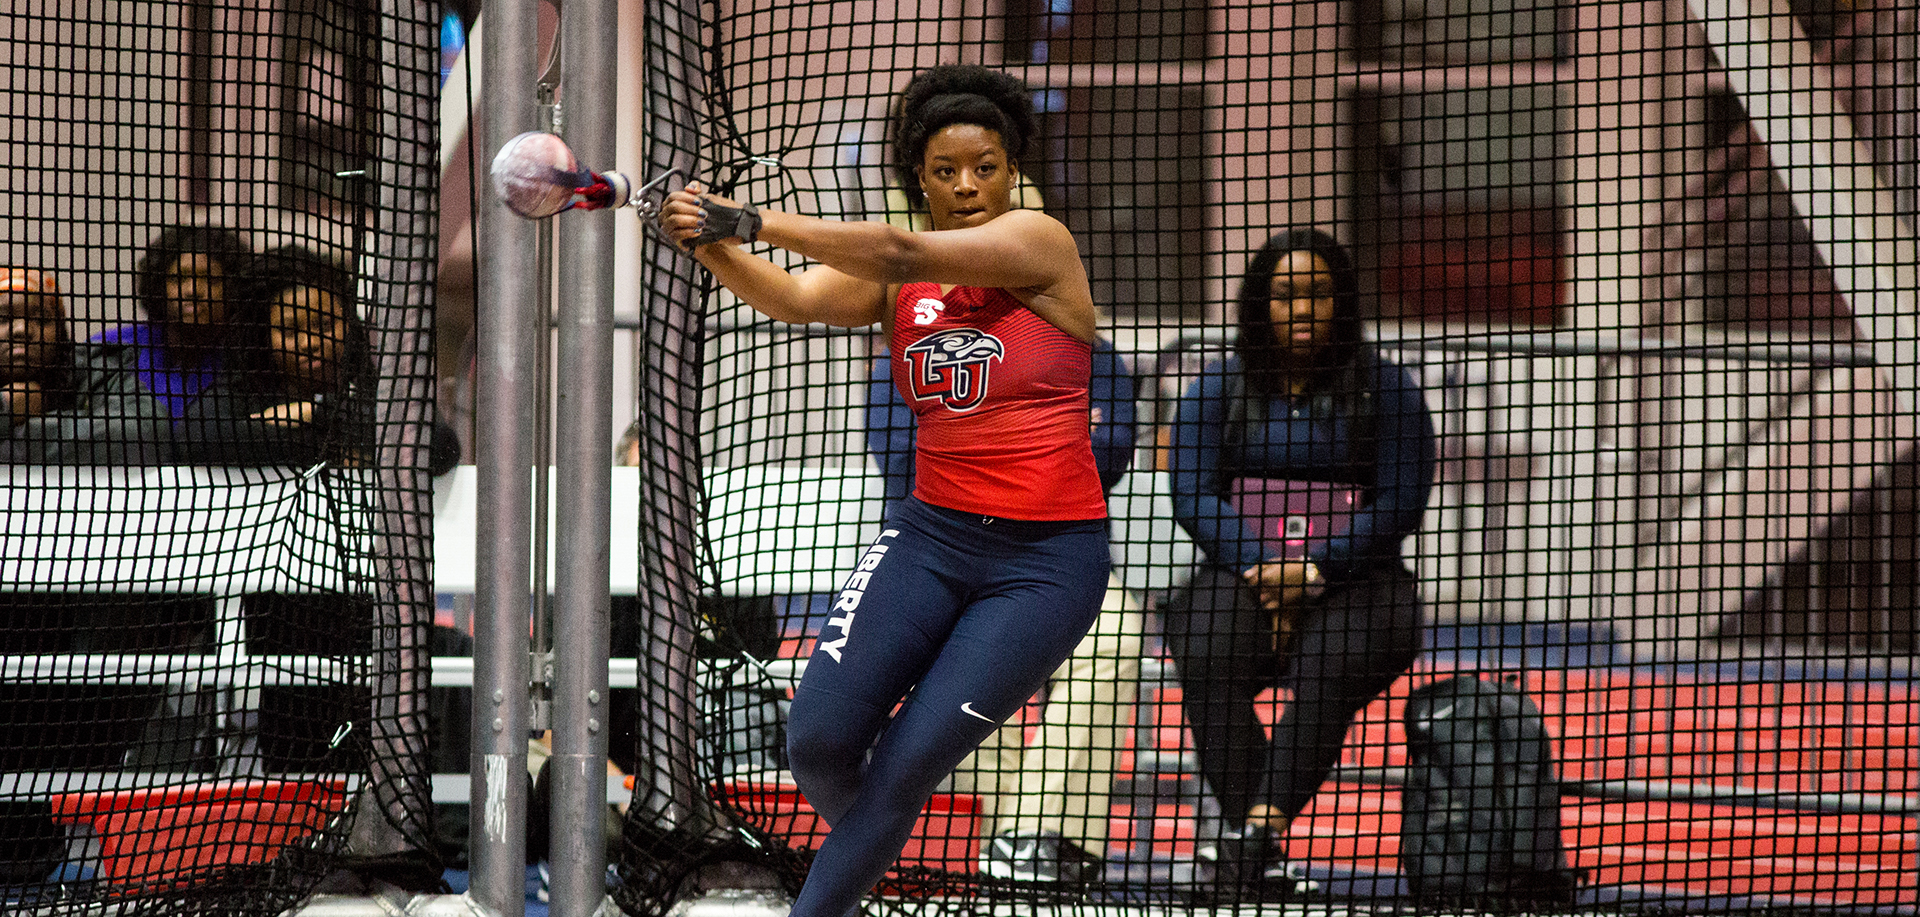 Dasiana Larson placed third in the women's weight throw with a personal-best heave of 62-3. The junior now ranks No. 6 in Big South Conference history.